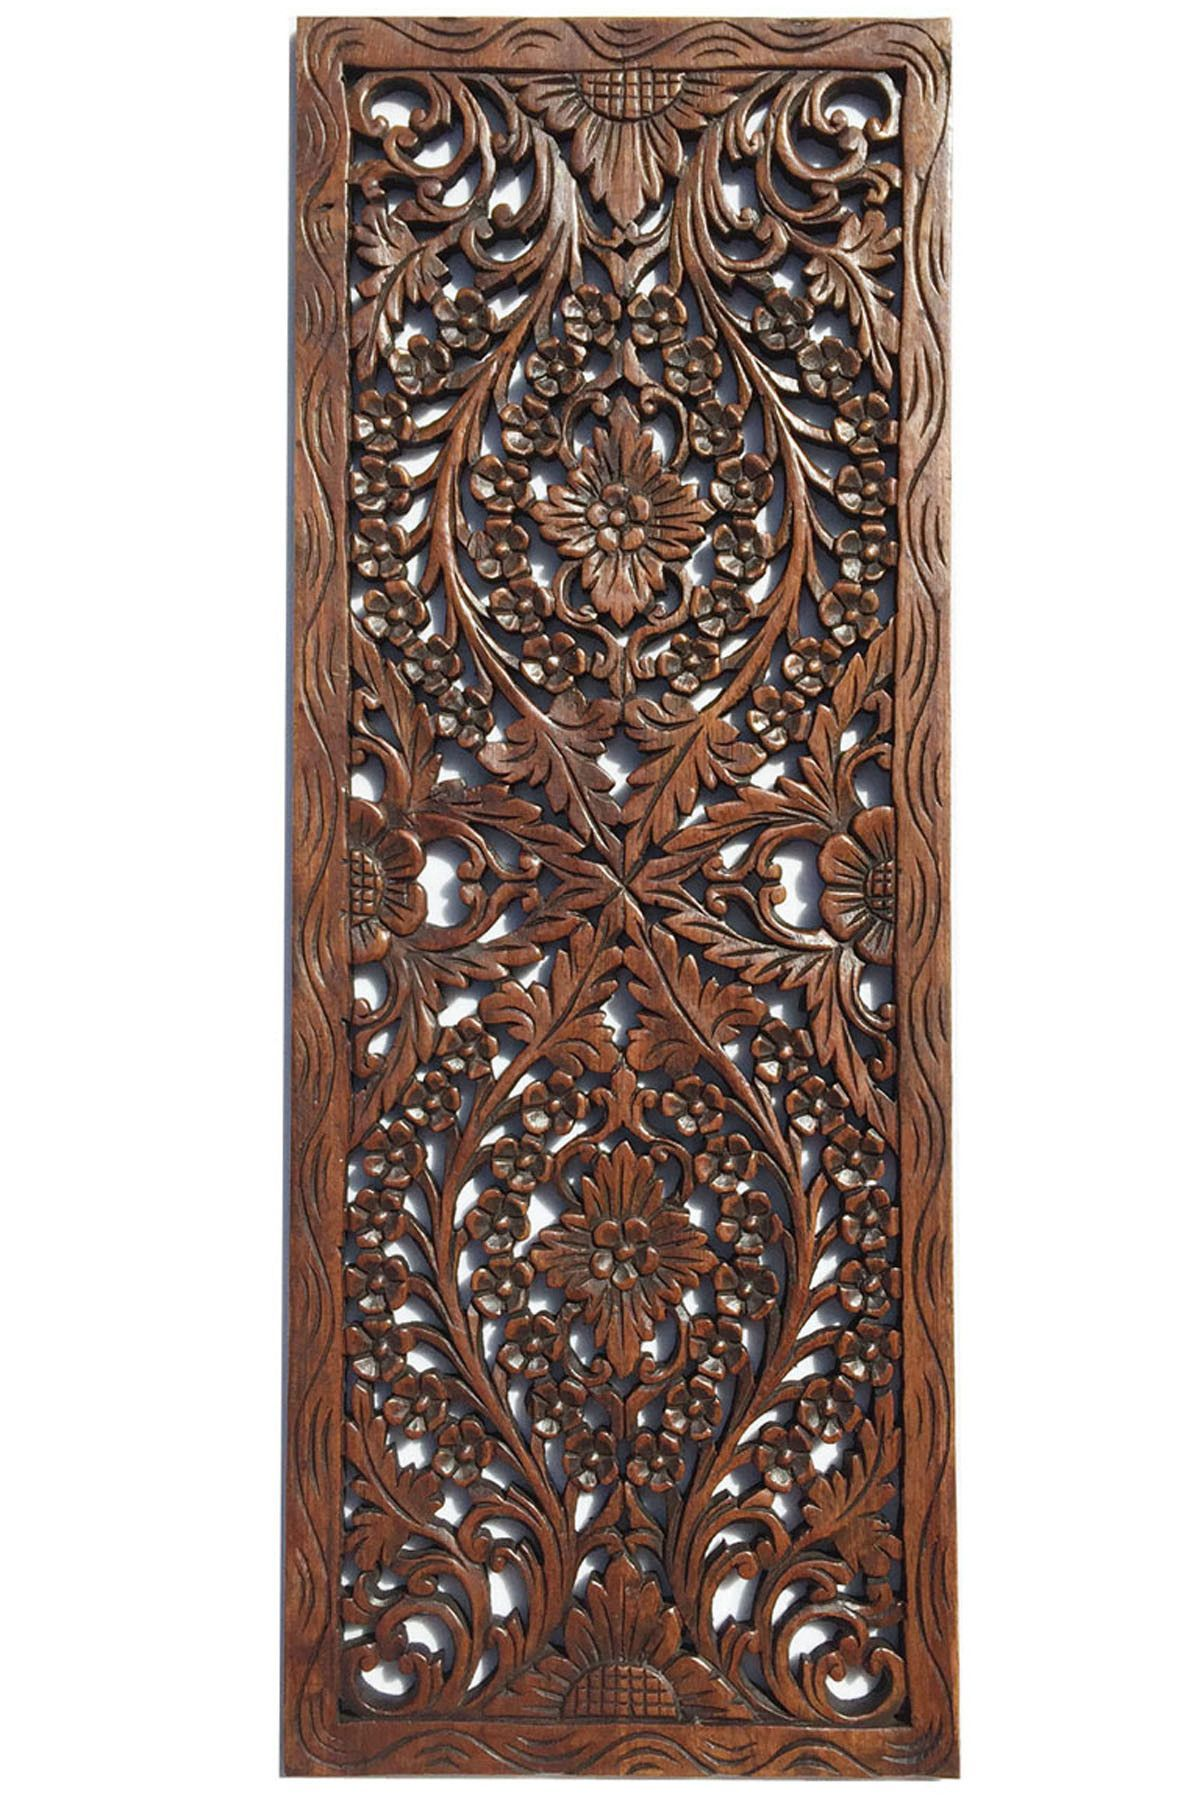 Wall Decor Wood Panel Floral Wood Carved Wall Panel Wall Hanging Asian Home